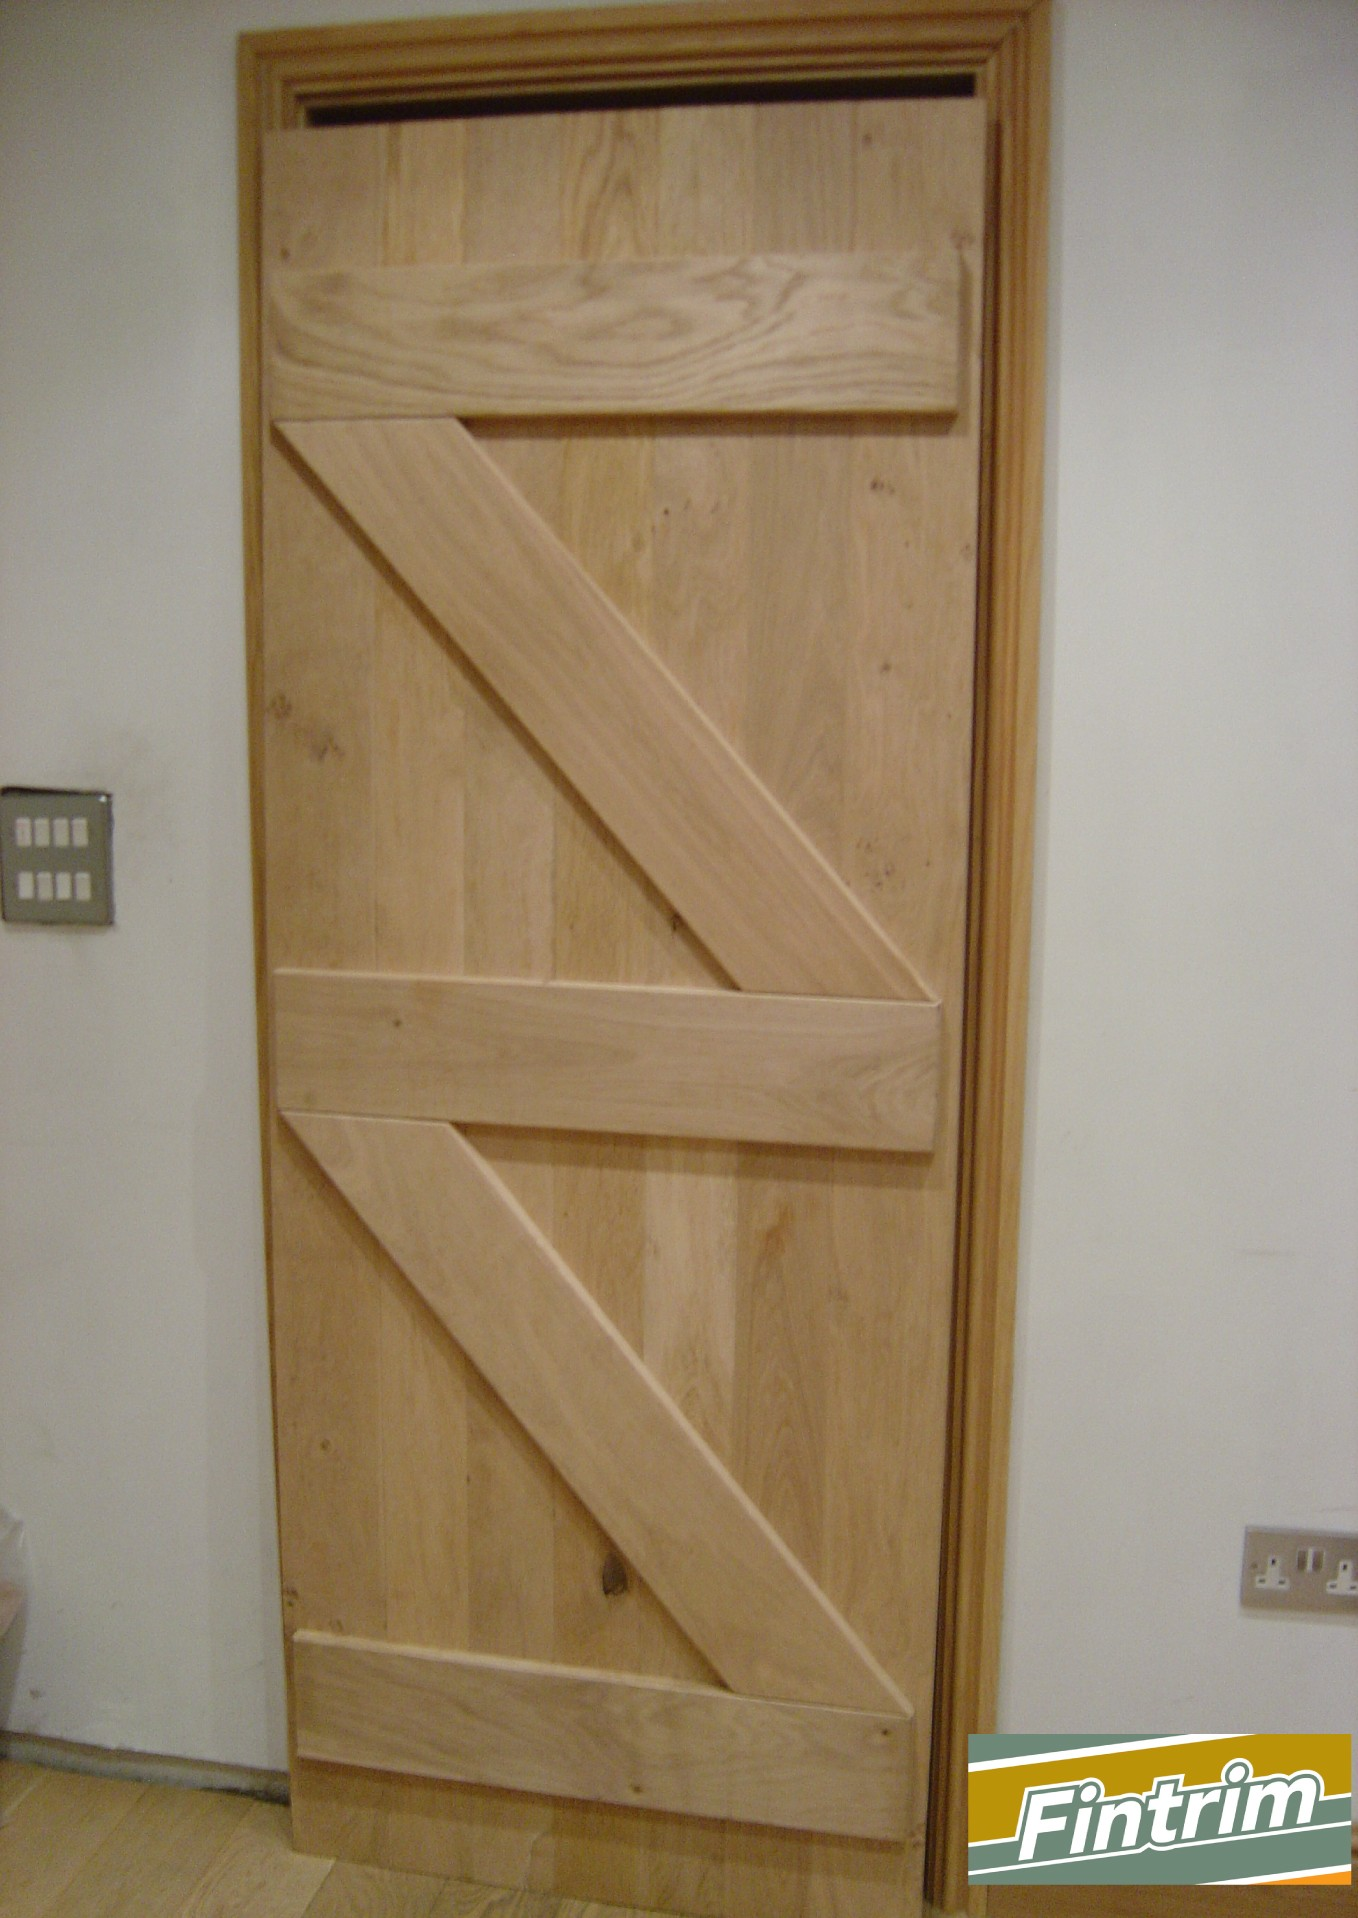 Traditional Oak Ledge And Brace Door